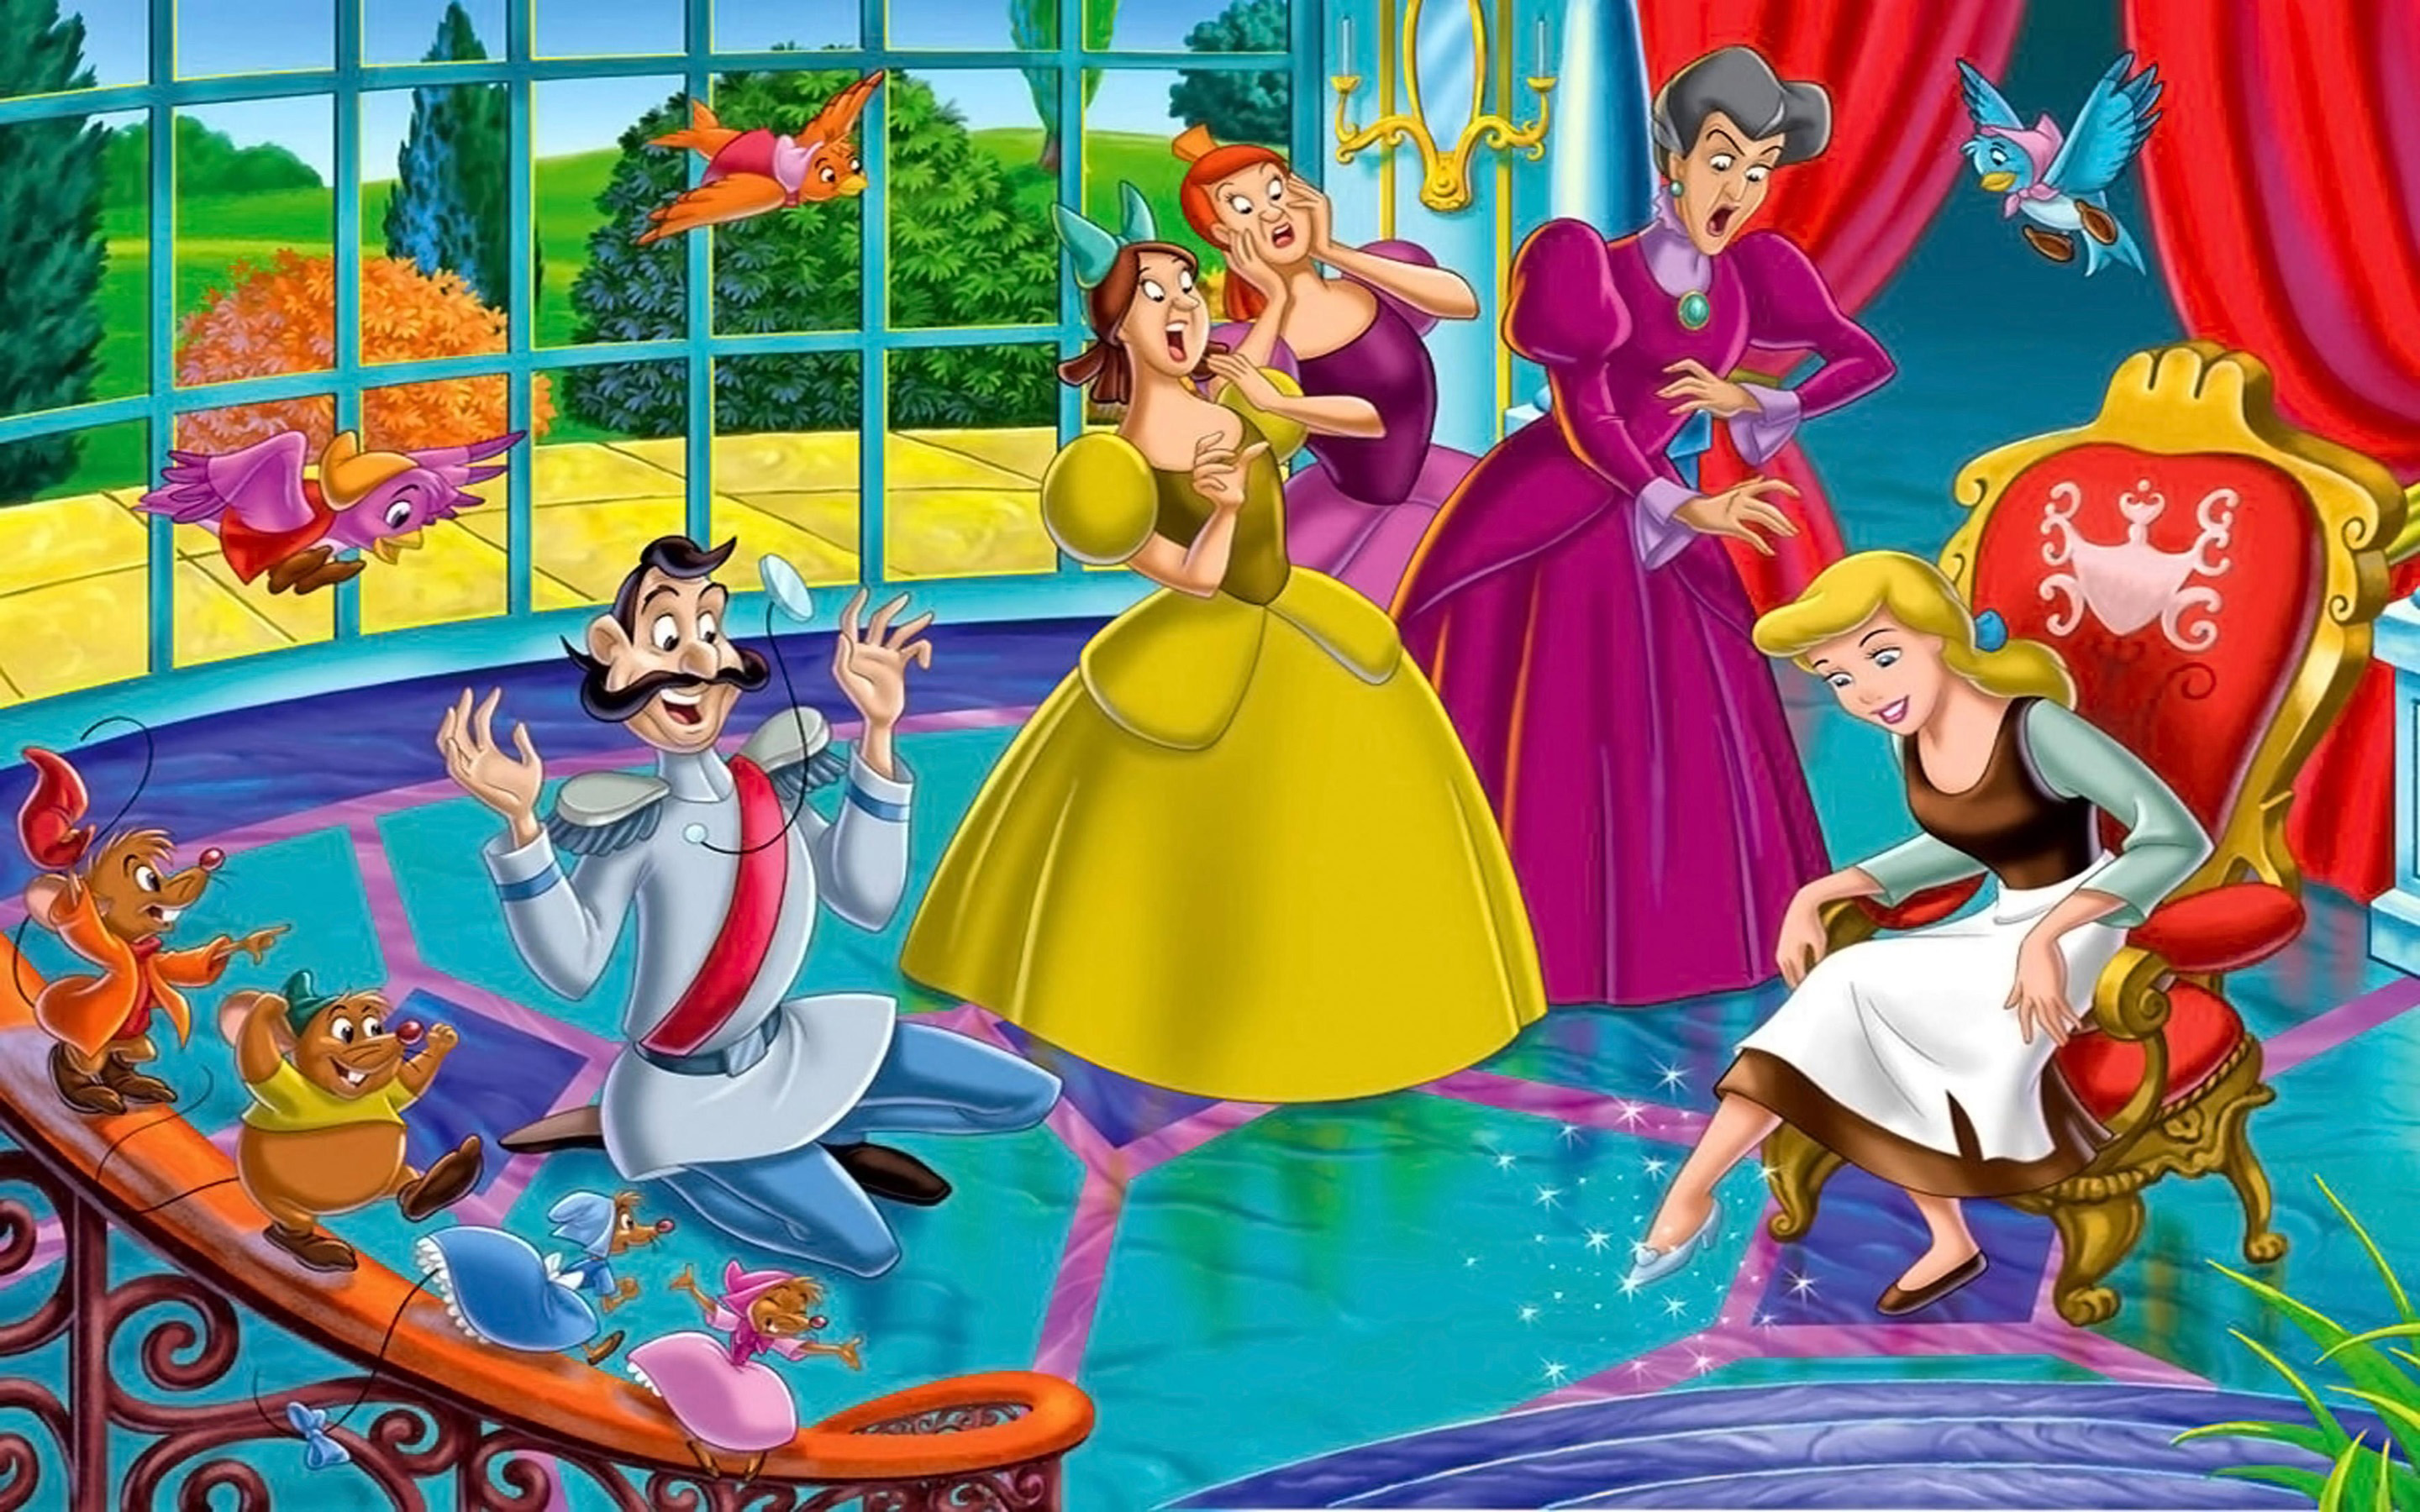 Wallpaper Iphone 5 Cartoon Cinderella Manages To Put On The Shoe The Rest Are